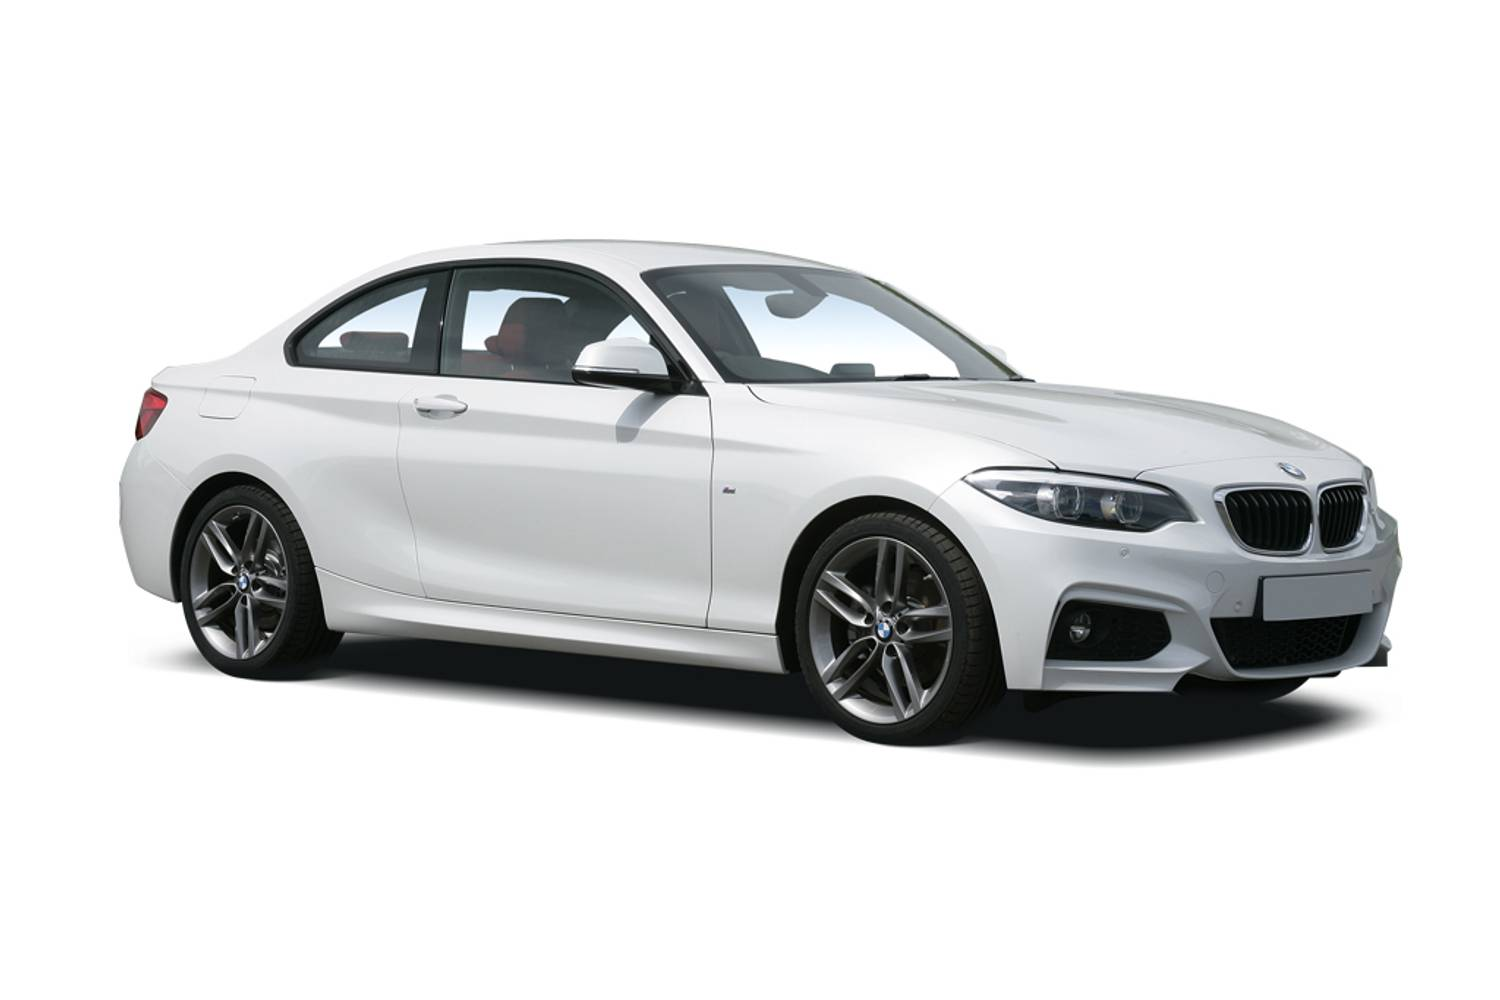 BMW 2 Series Coupe 2dr [Nav]